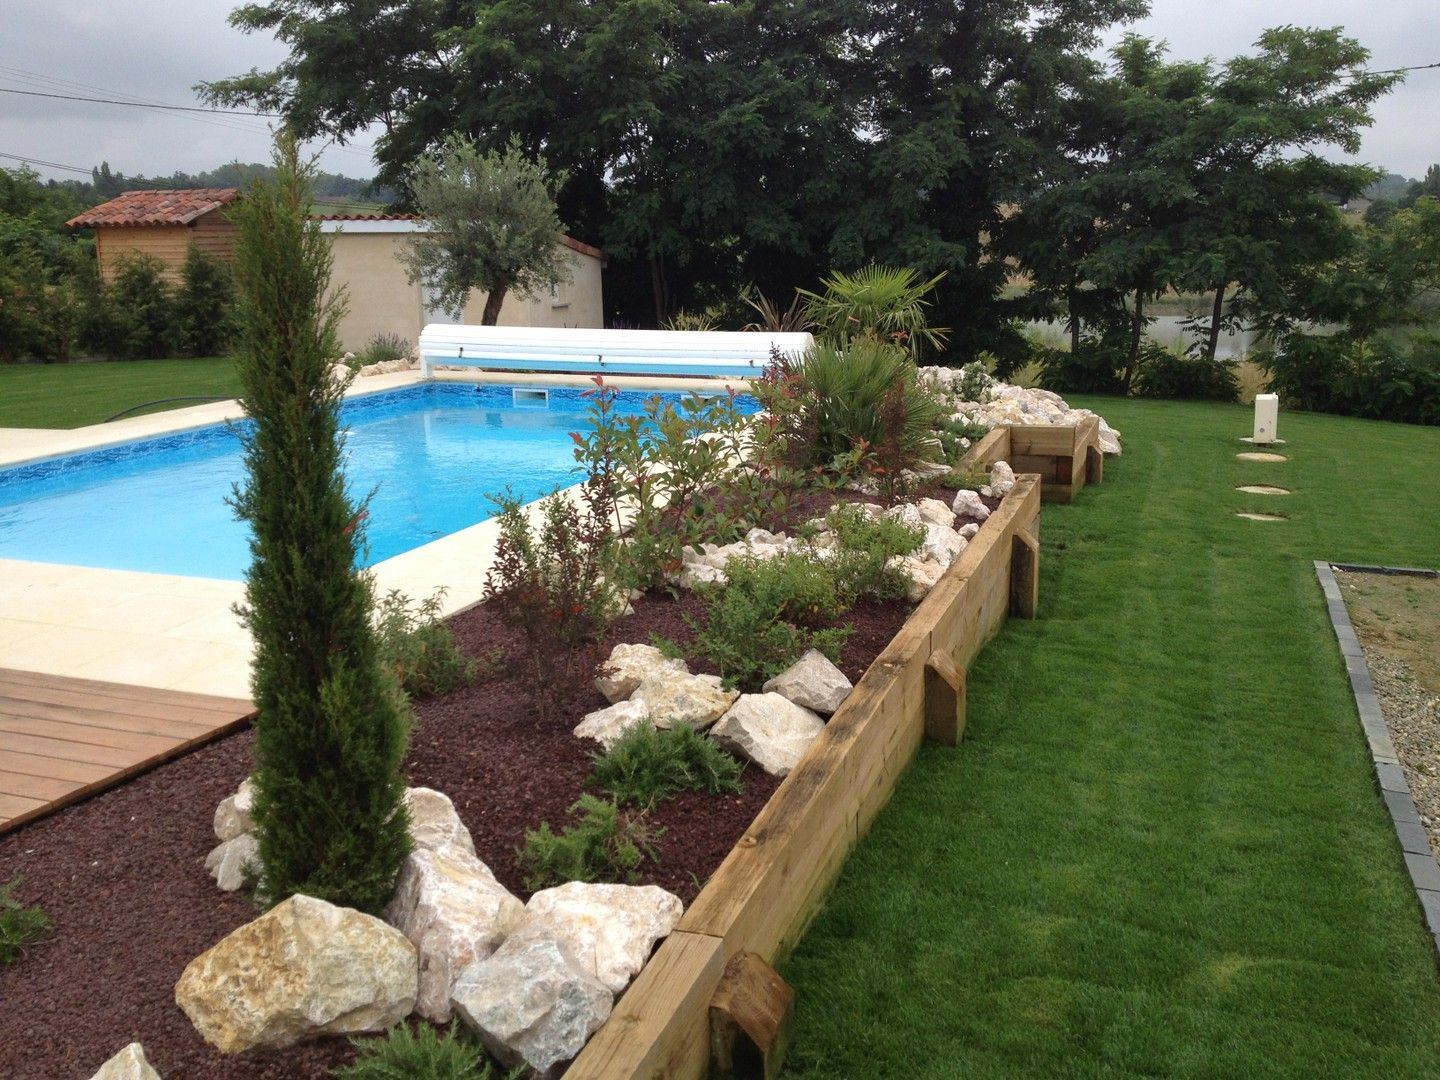 Am nagement tour de piscine piscines et bassins de for Amenagement sol jardin